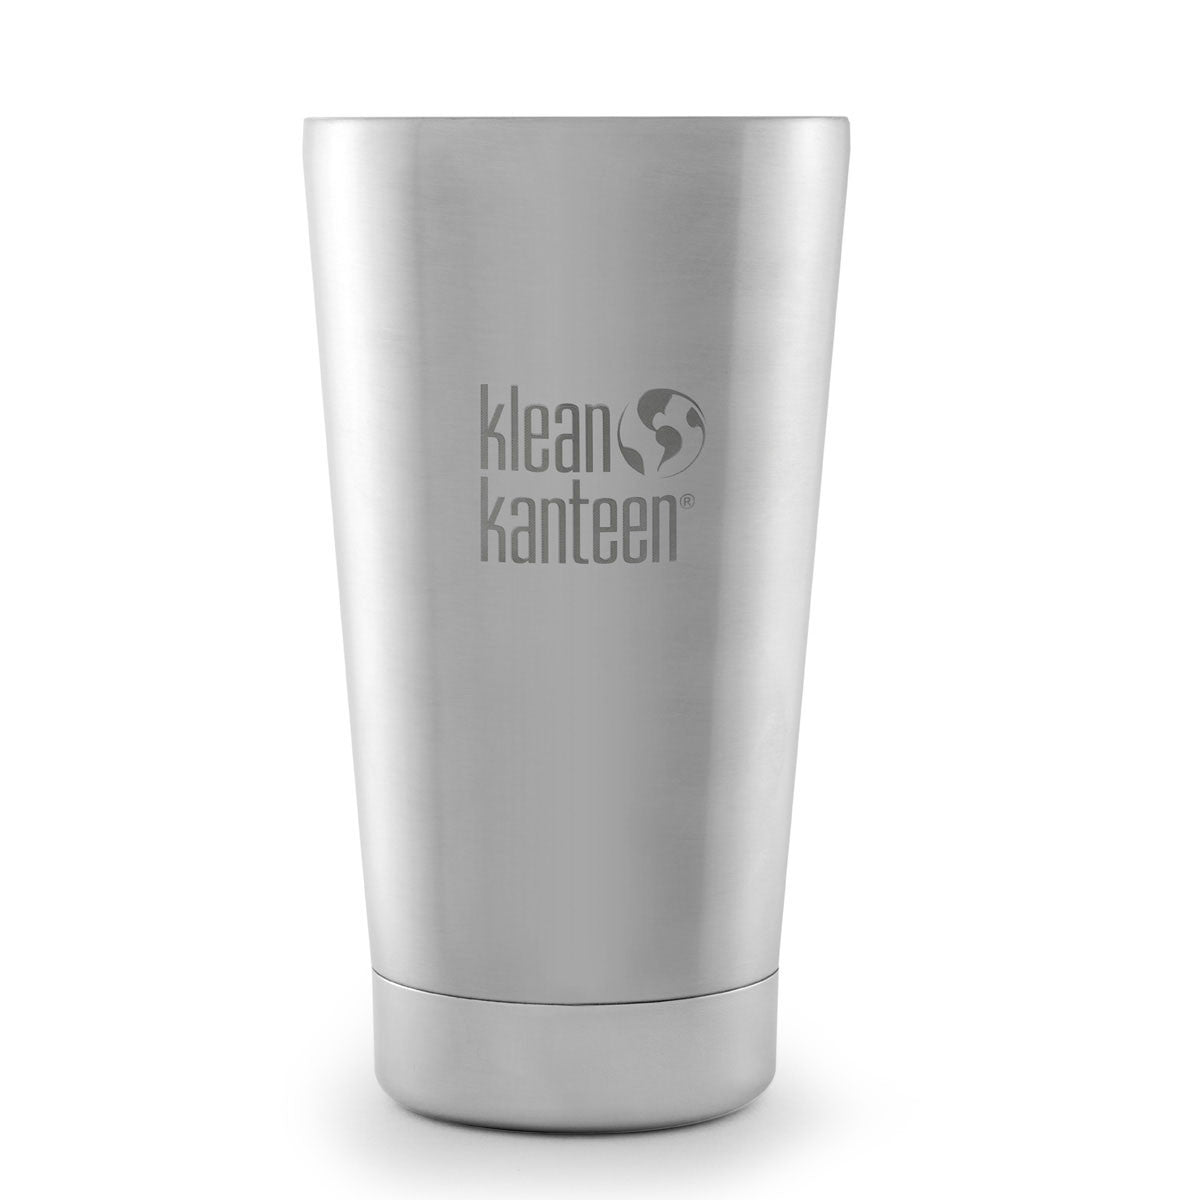 Klean Kanteen Stainless Steel Insulated Tumbler Mug Klean Kanteen Thermoses Brushed Stainless / 473ML 16OZ at Little Earth Nest Eco Shop